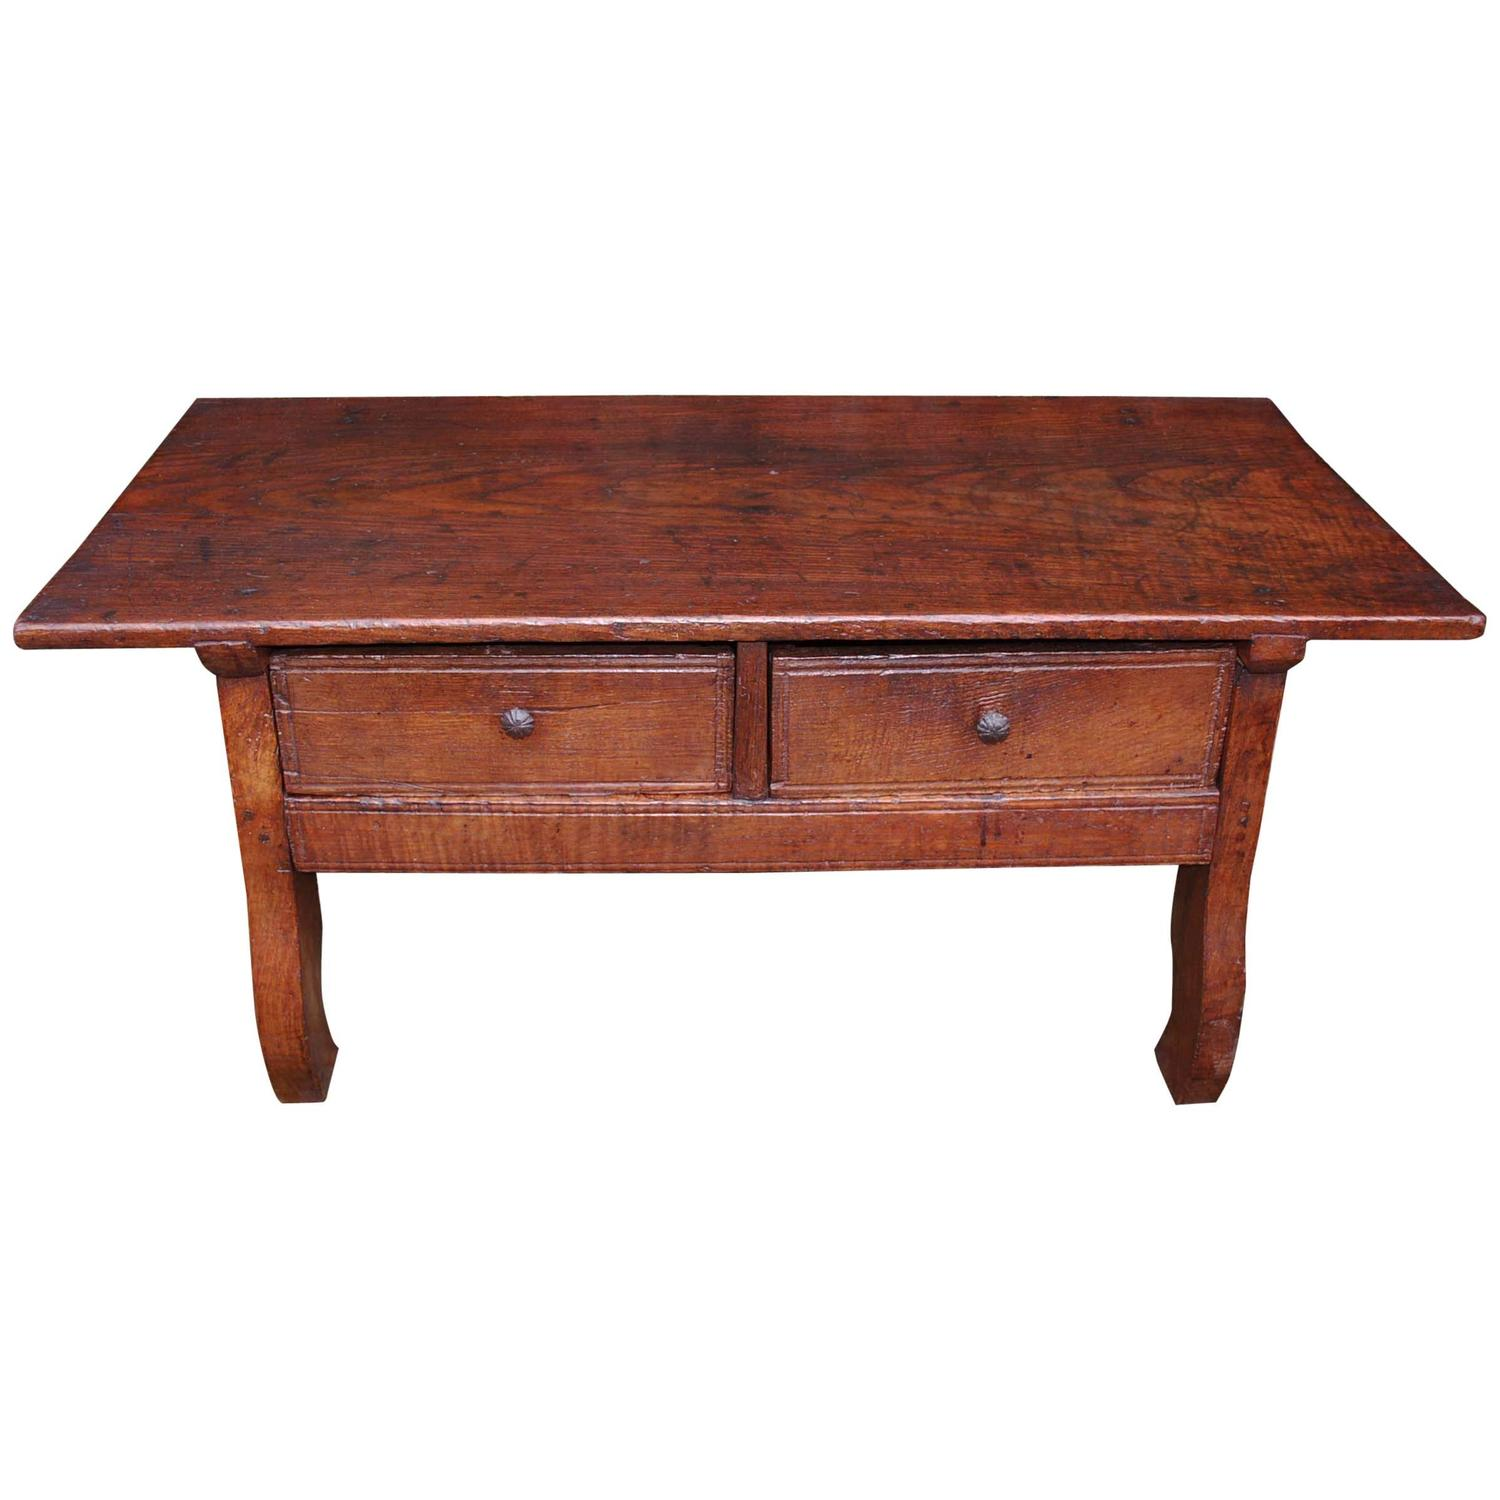 19th century walnut wooden low table or coffee table made for Low coffee table wood